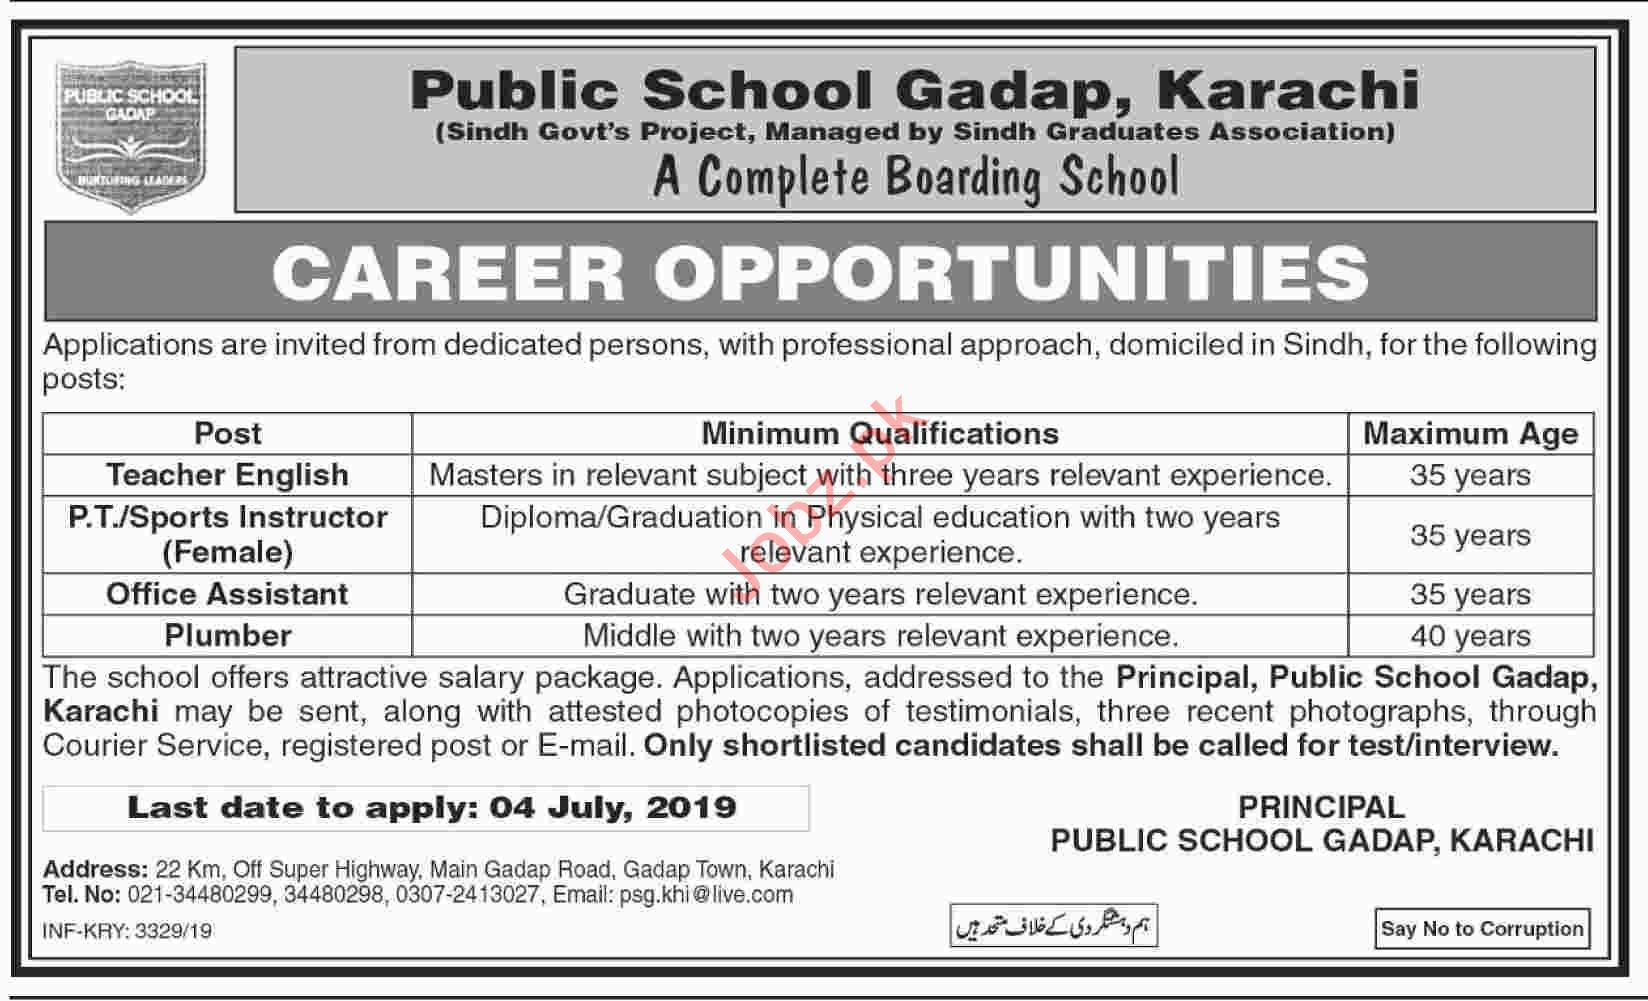 Public School Gadap Karachi Jobs 2019 for Teachers